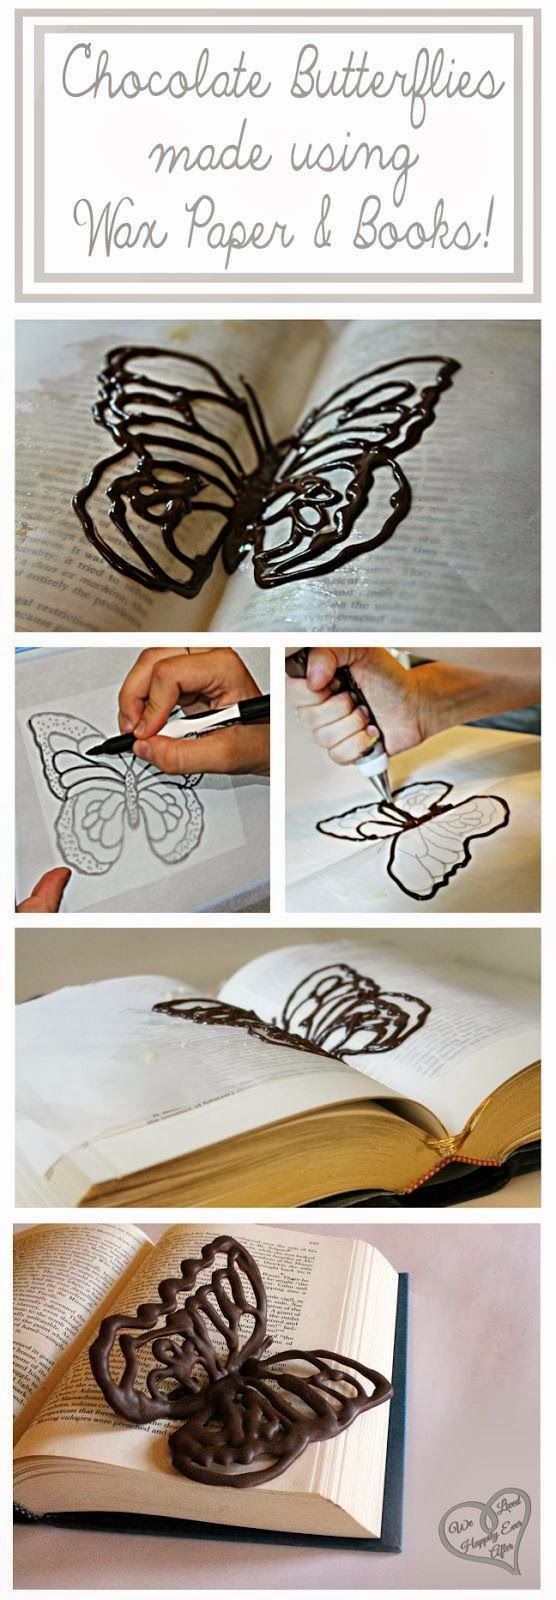 Make Chocolate Butterflies Using Wax Paper and Books! This would be awesome on a cake.